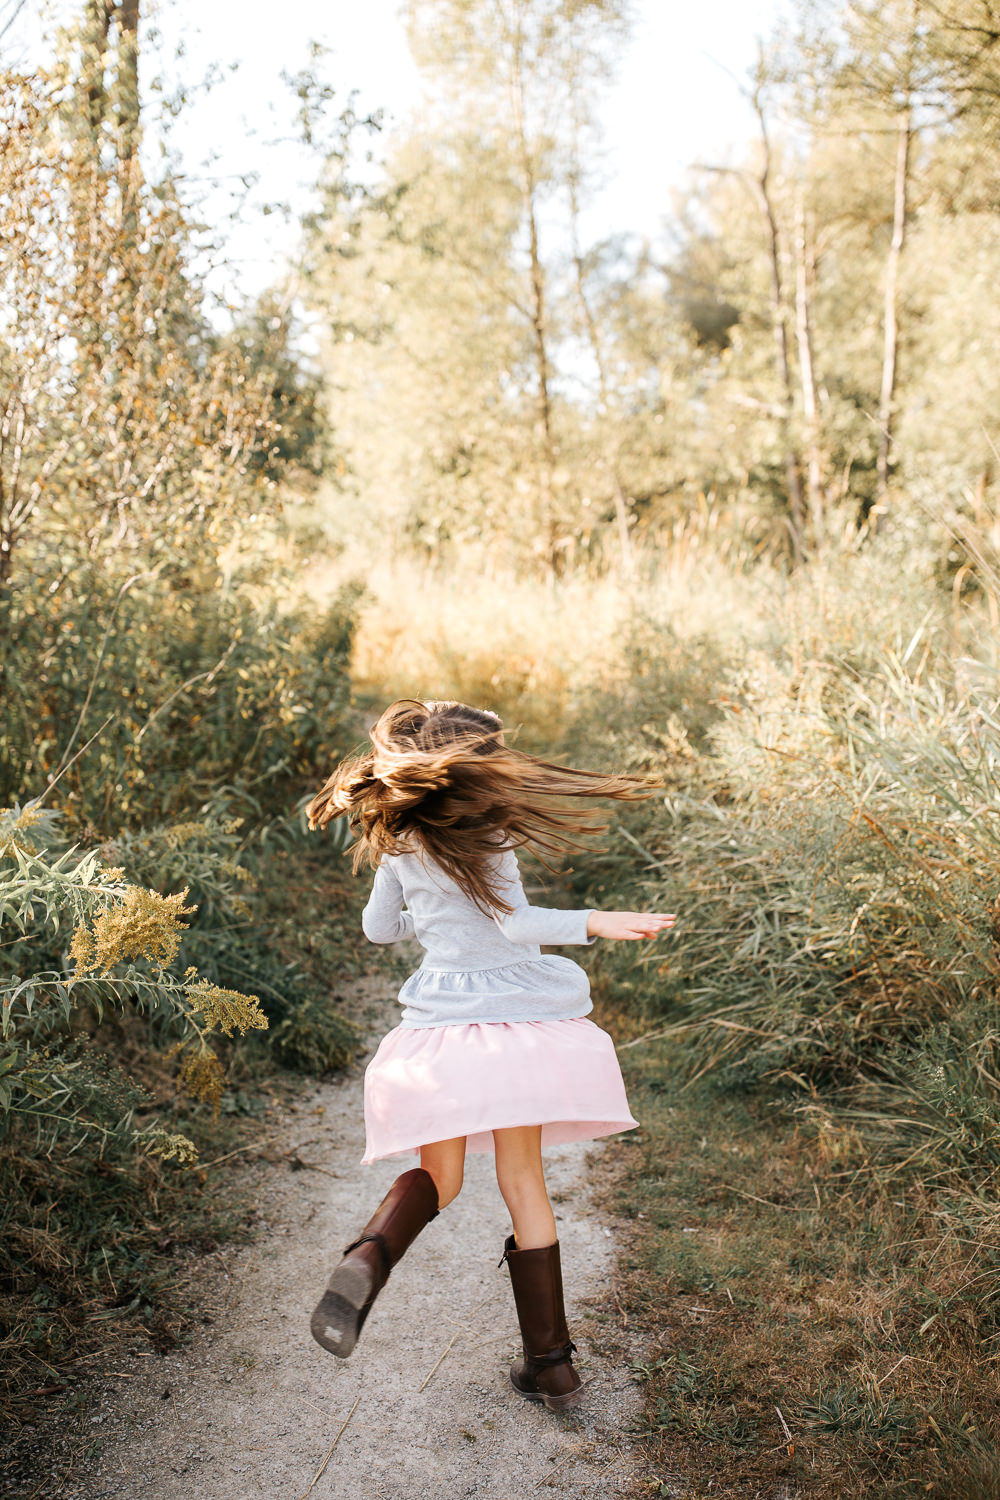 5 year old girl with long dark hair wearing tall boots and pink skirt twirling on path surrounded by tall grasses,hair and skirt moving -York Region In-Home Photos